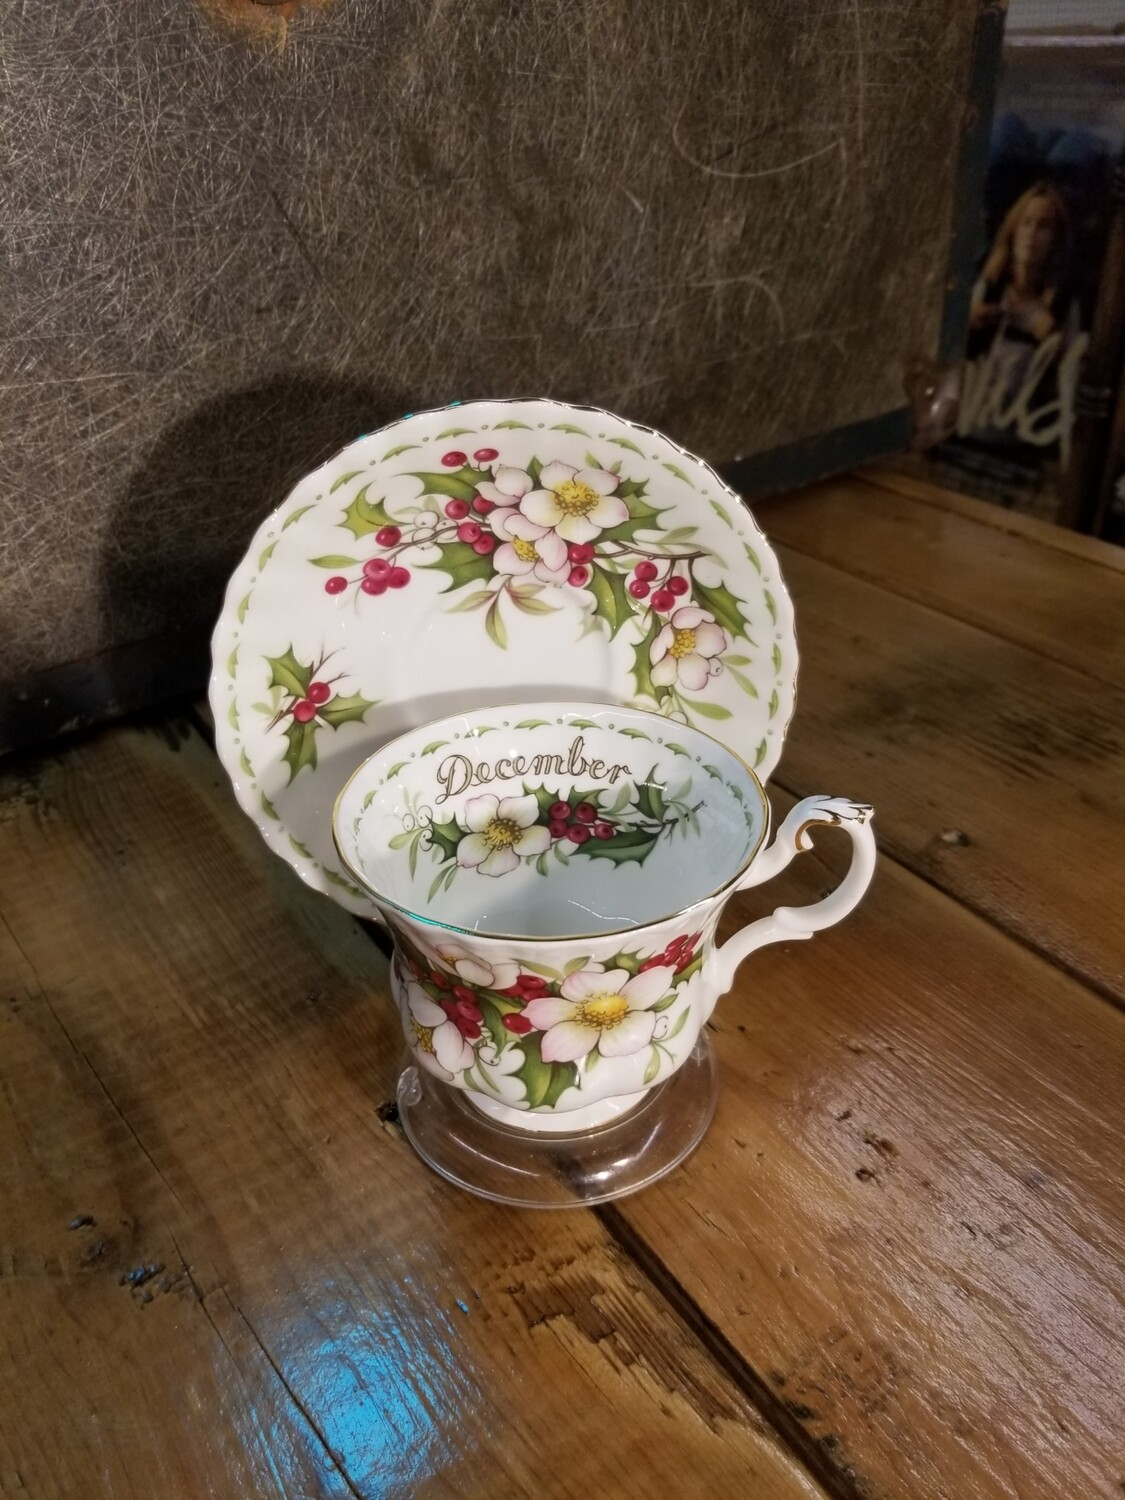 Month Cup and Saucer